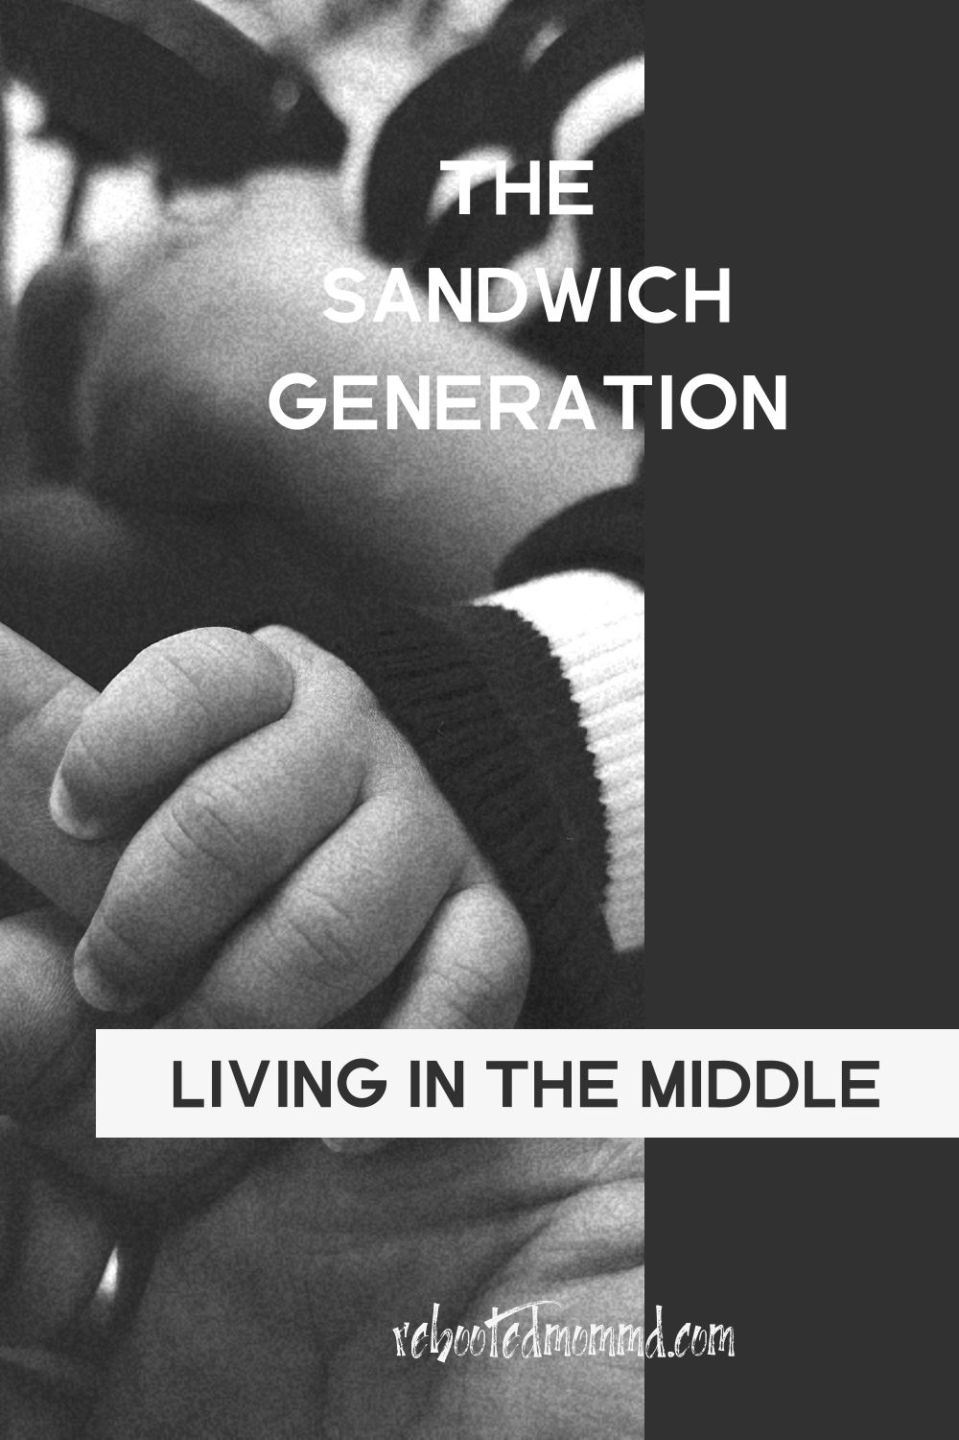 The Sandwich Generation: Living In The Middle